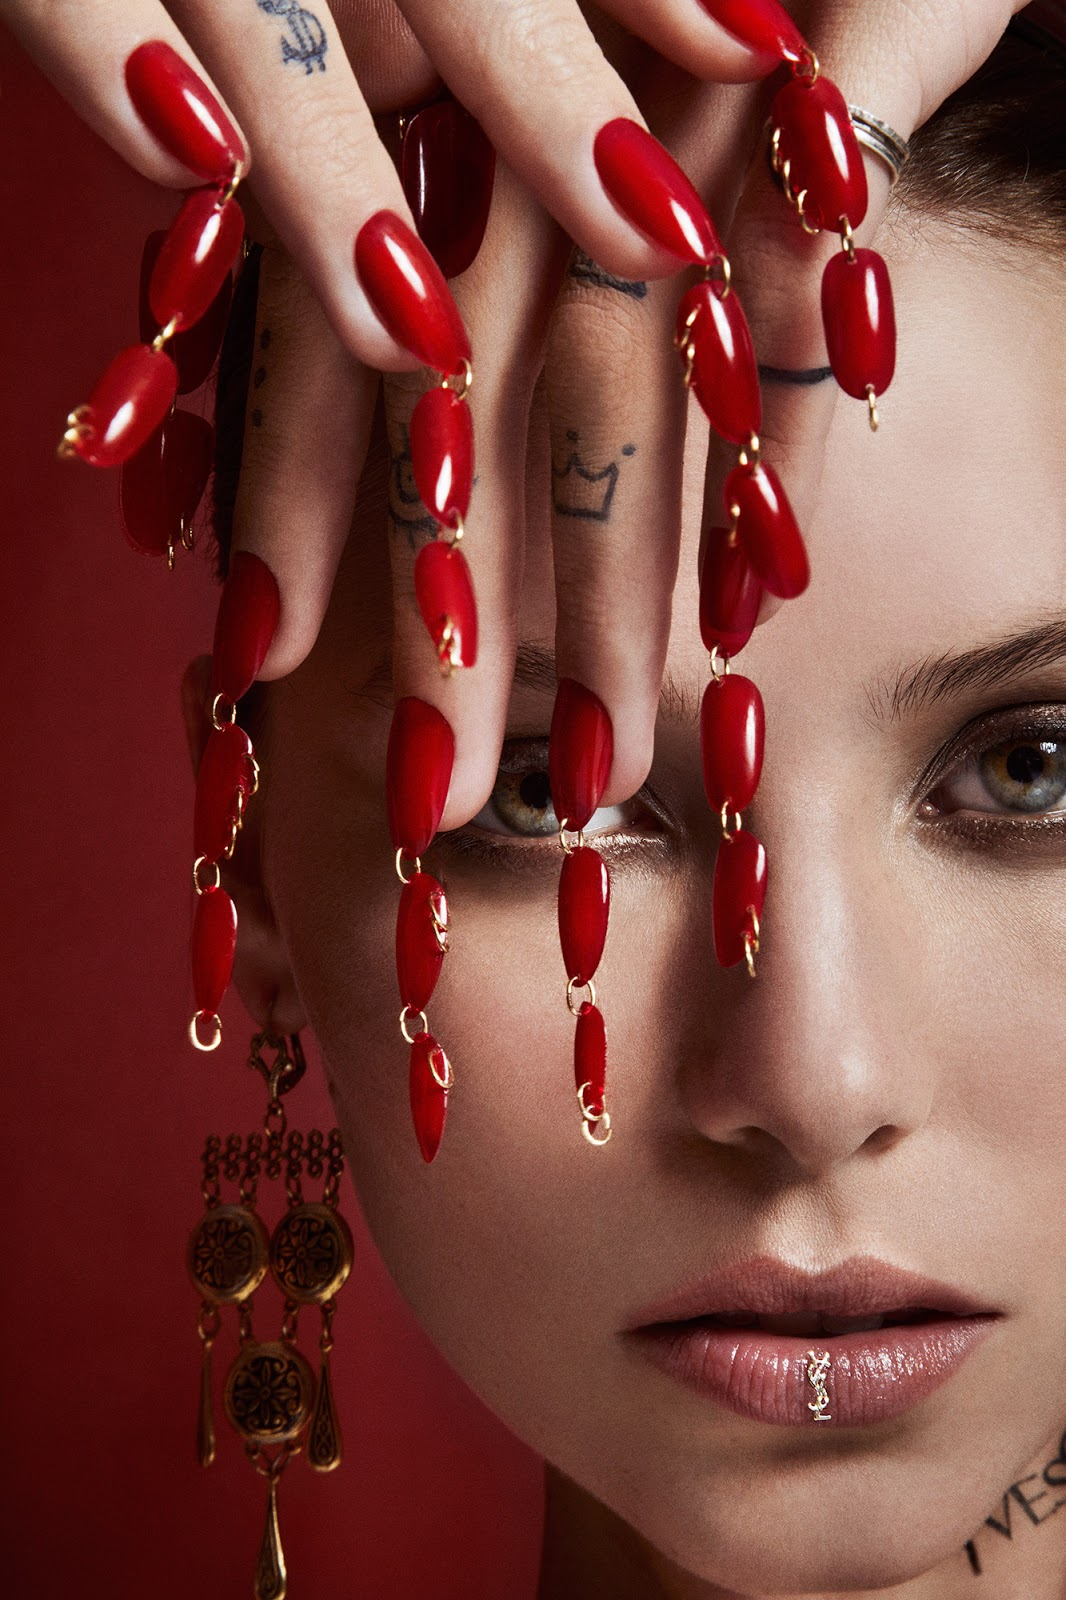 dripping-nails-manicure-chains-pierced-nails.jpg